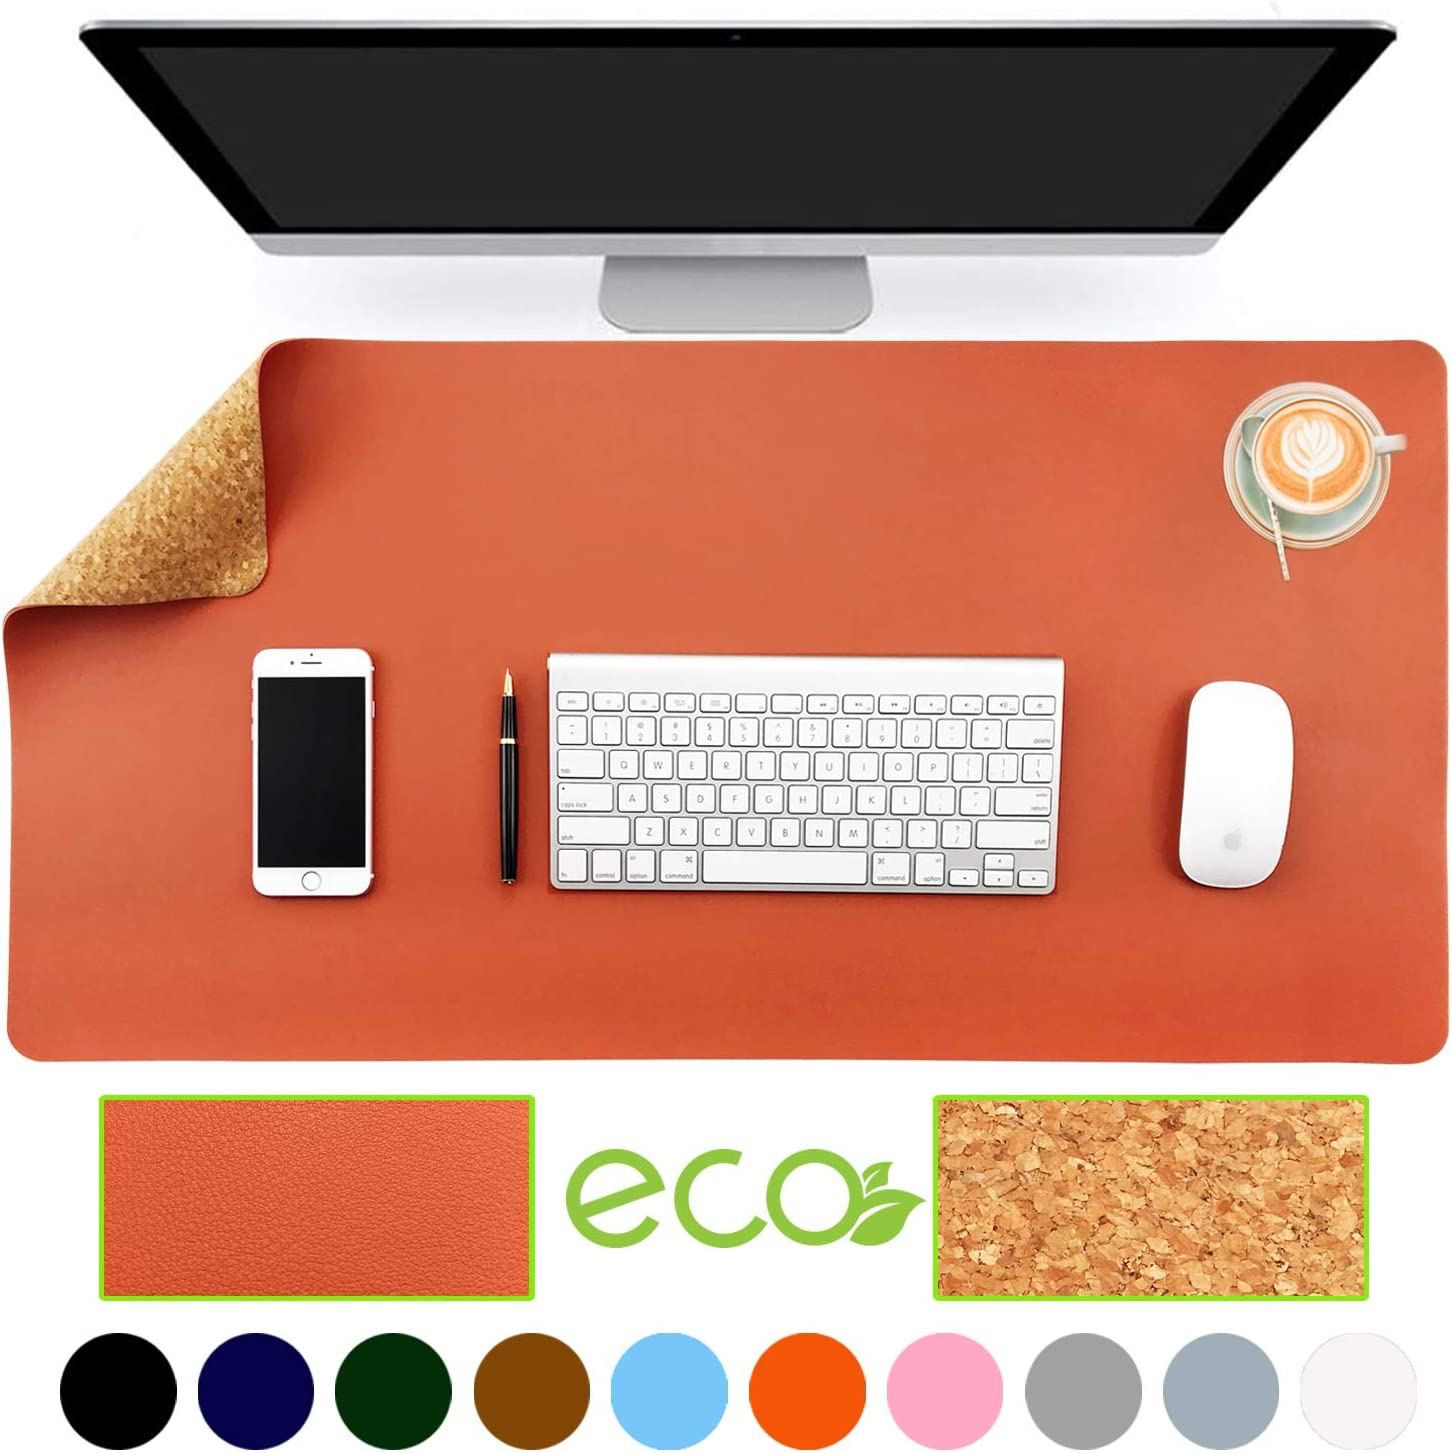 "Aothia Eco-Friendly Natural Cork & Leather Double-Sided Office Desk Mat 31.5"" x 15.7"" Mouse Pad Smooth Surface Soft Easy Clean Waterproof PU Leather Desk Protector for Office/Home Gaming (Orange)"